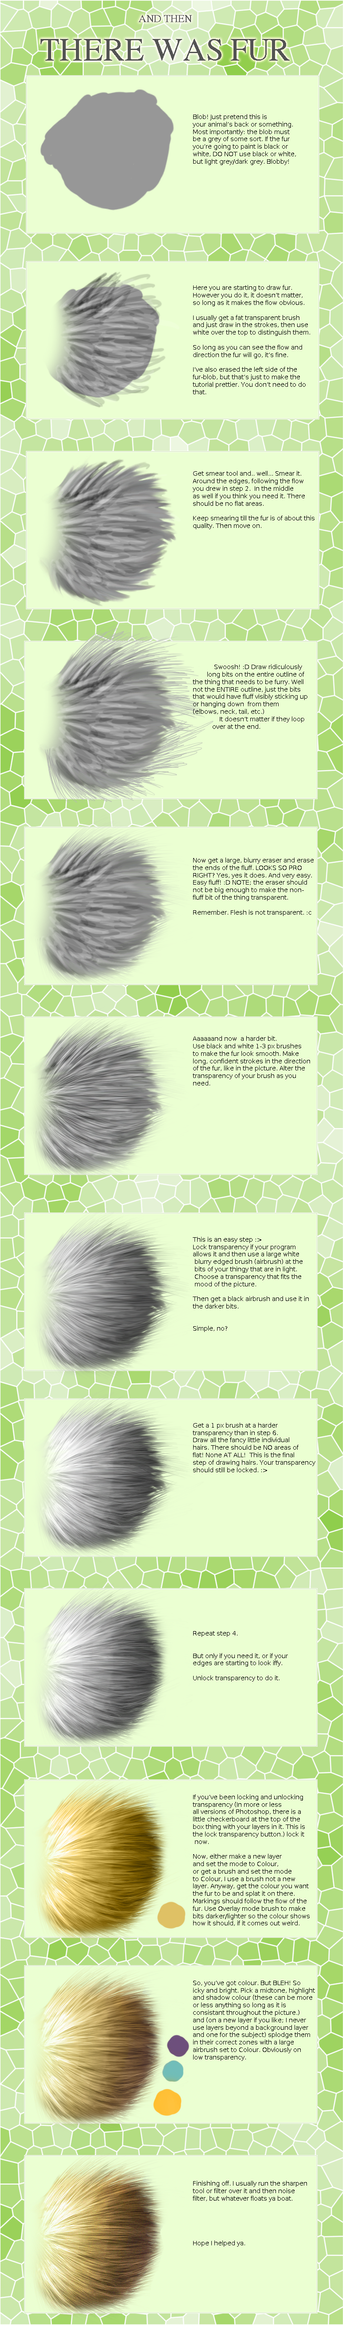 Fur tutorial by Snowpuddles